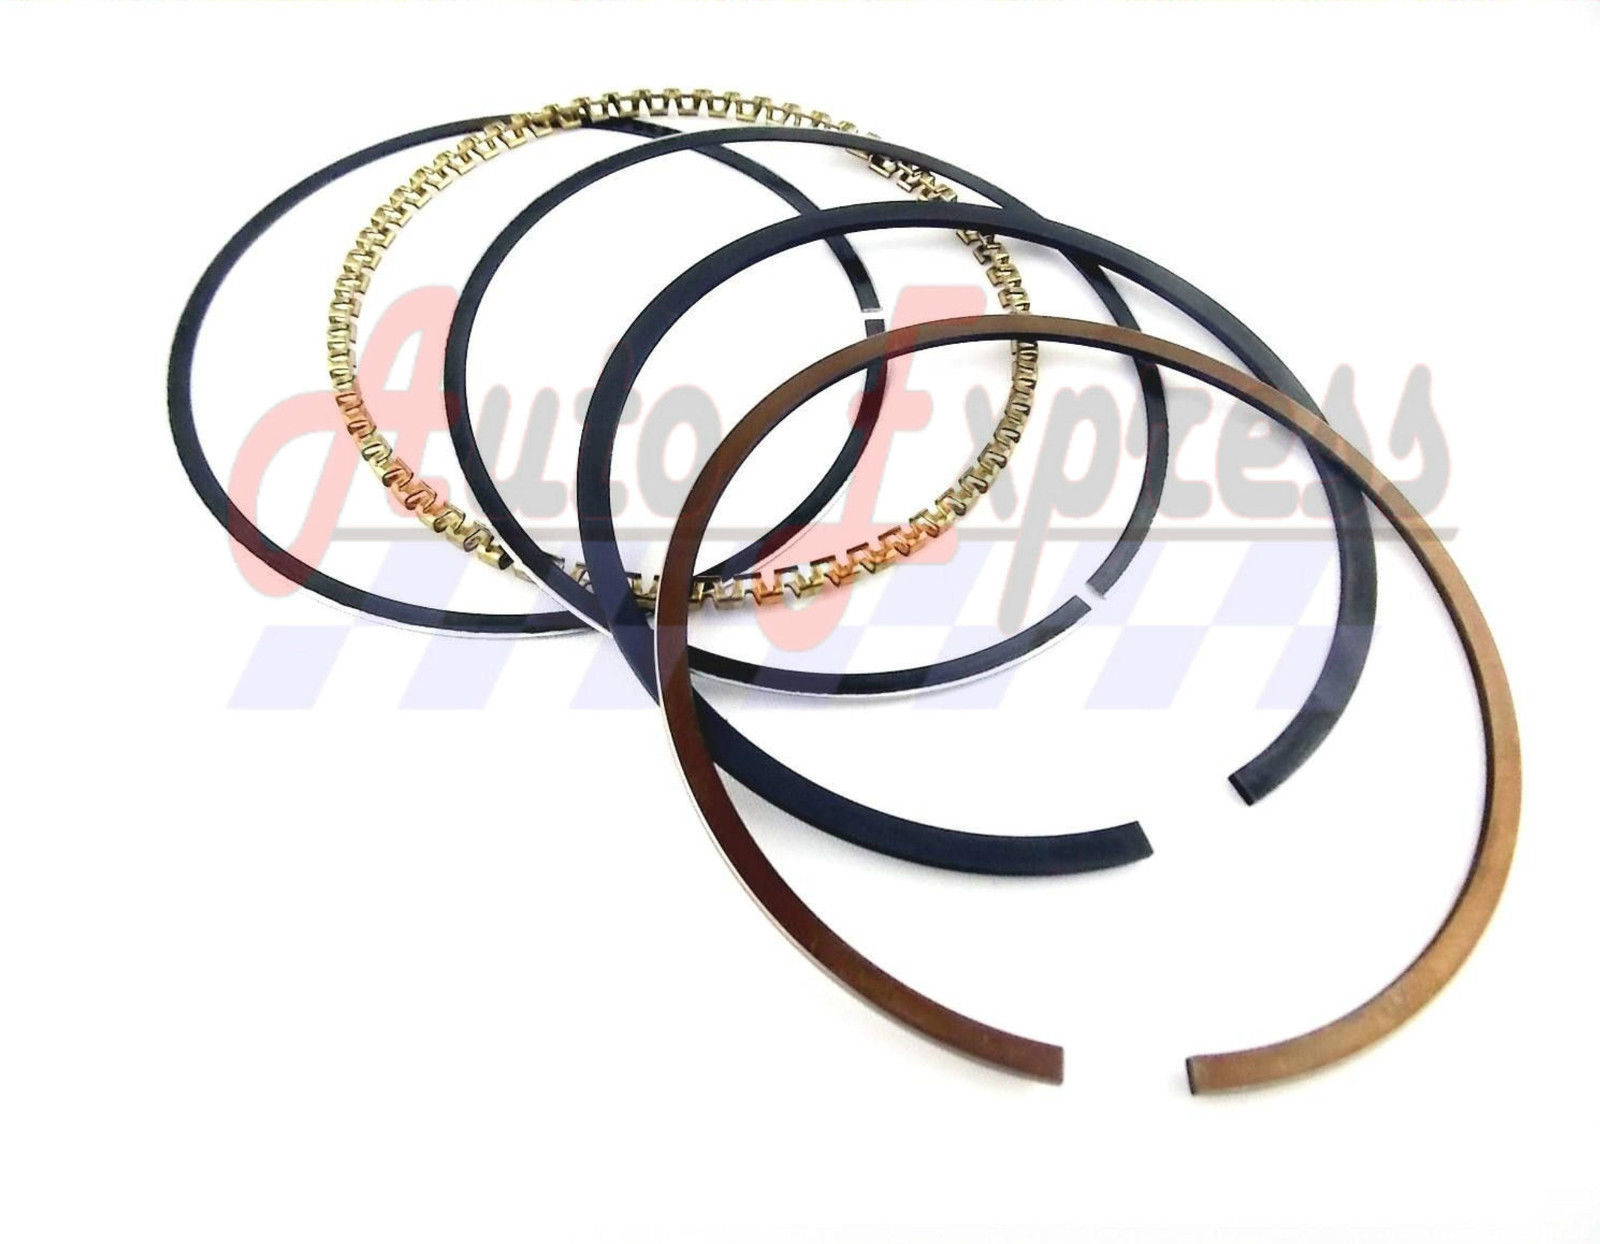 6.0 HP Diesel Piston Rings Set FITS Yanmar and Chinese Engines 178 178F L70